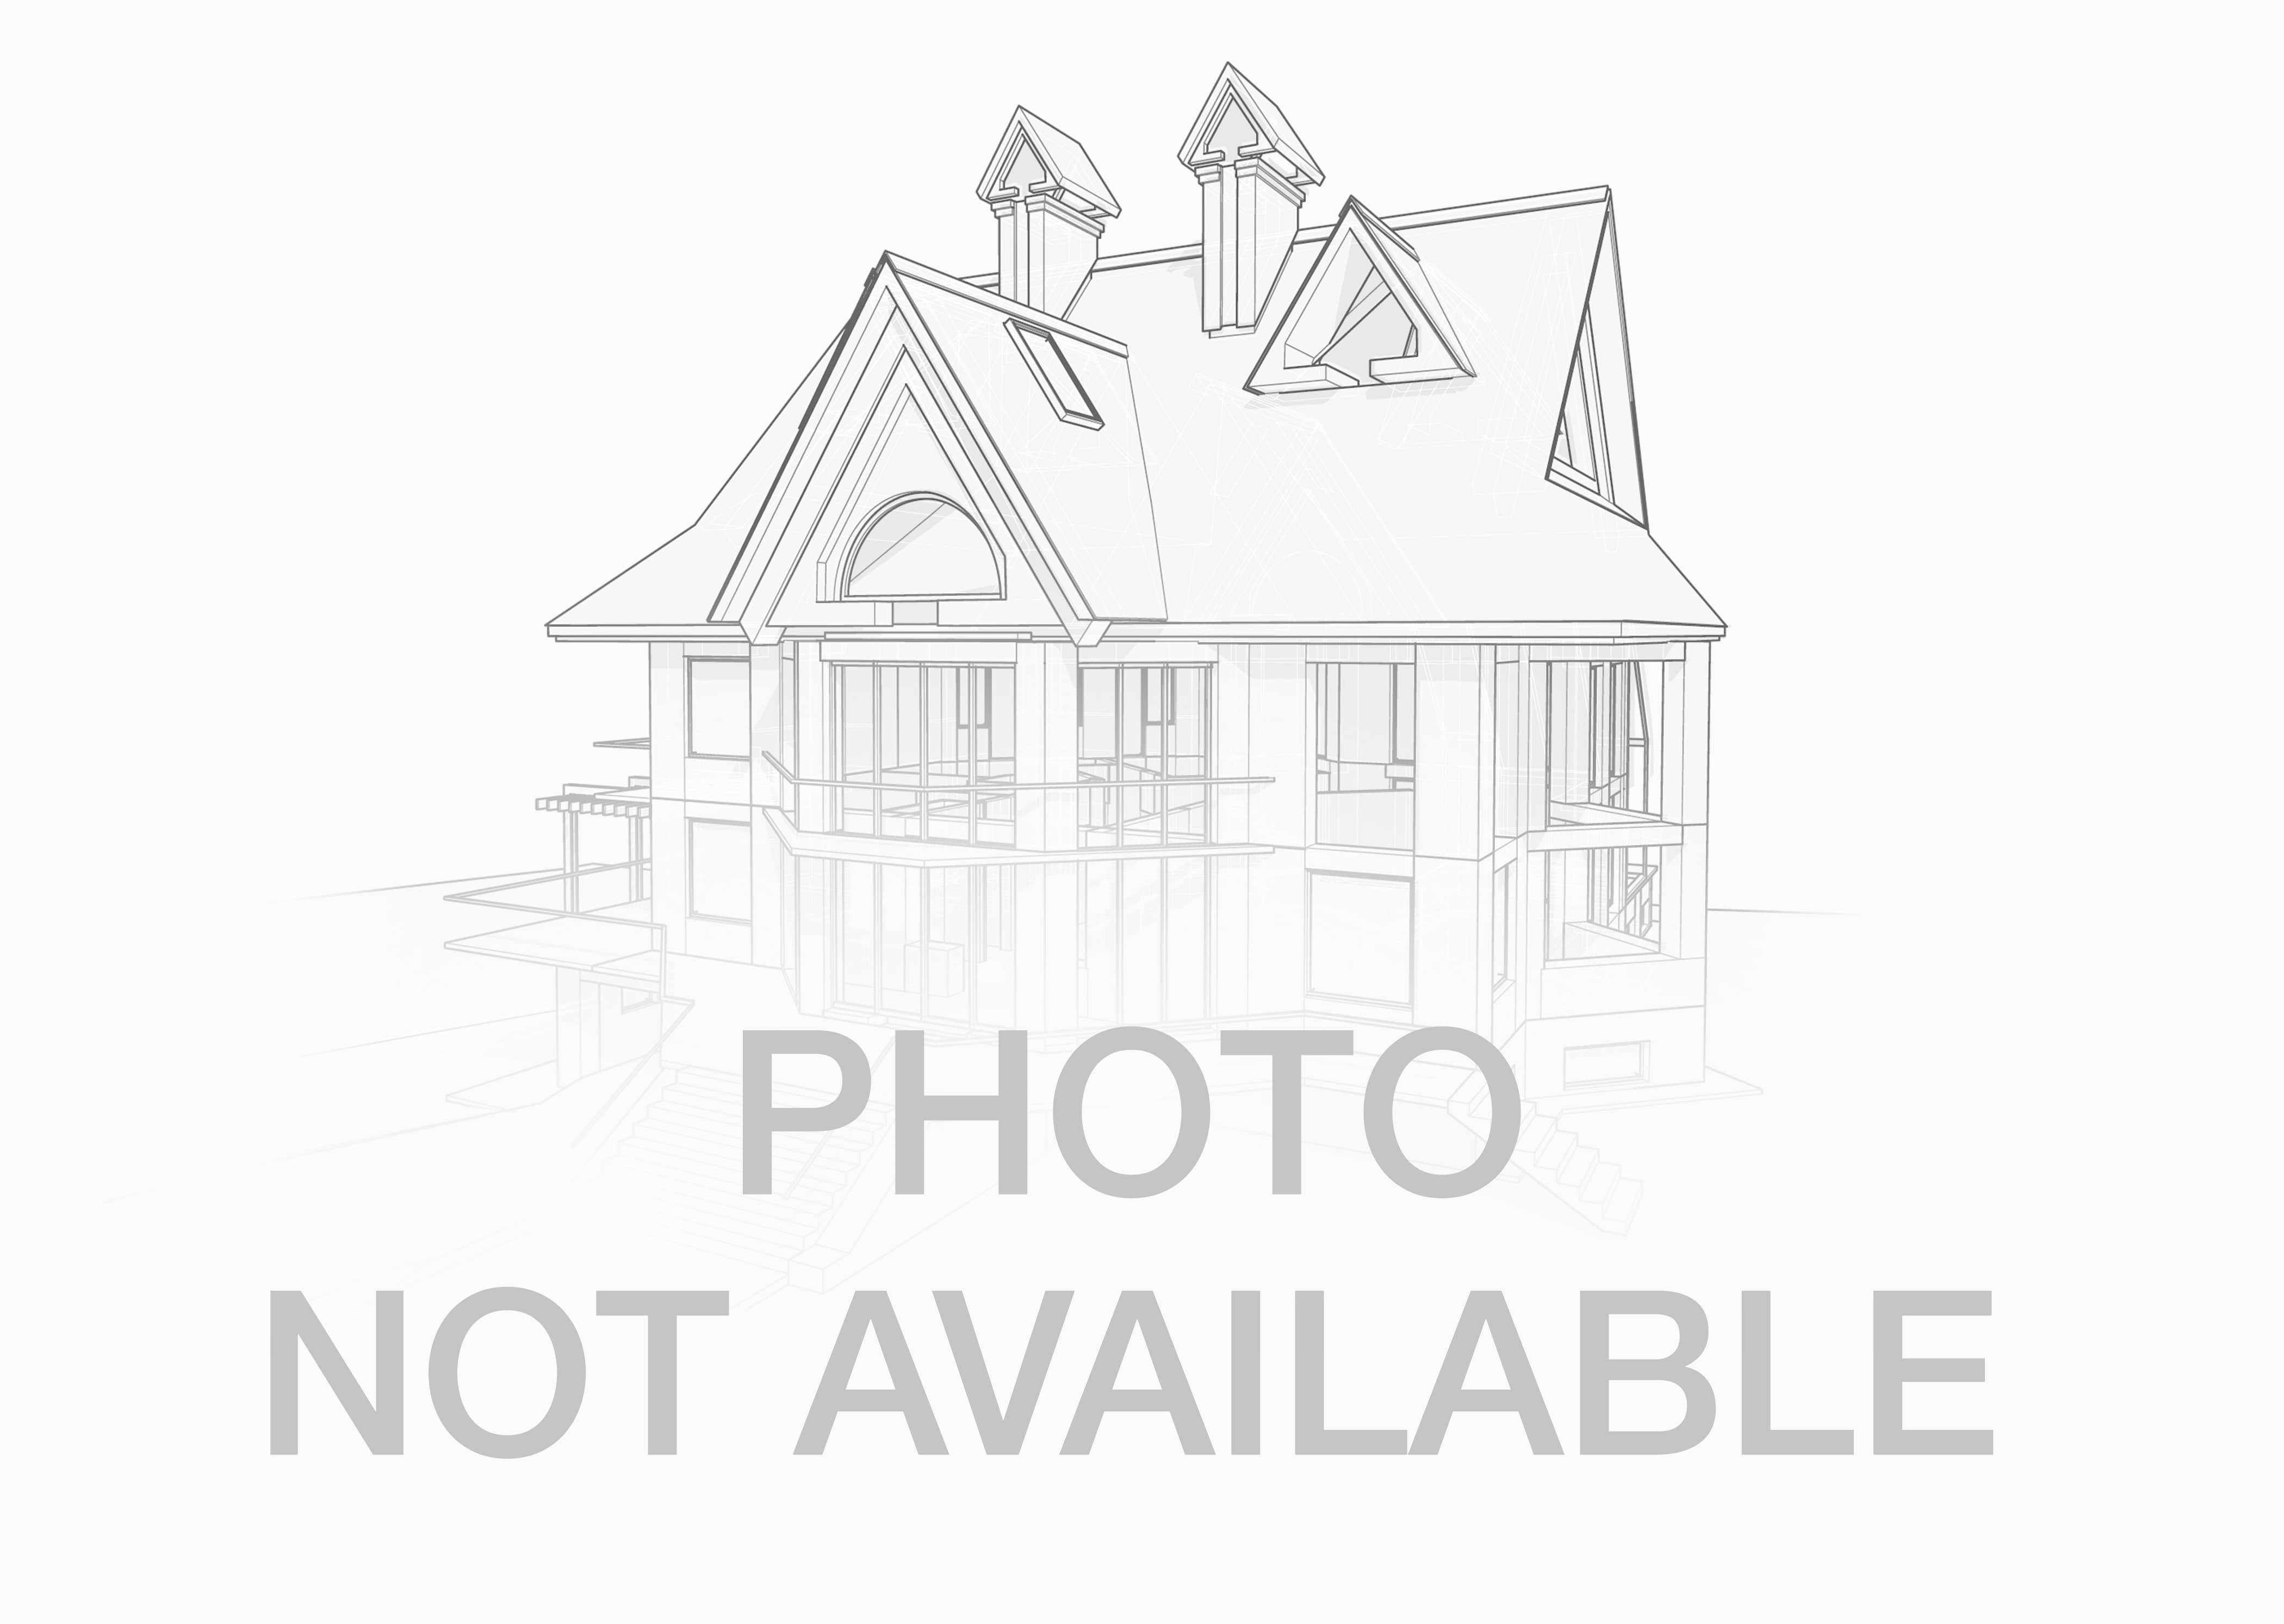 cindy buckreus with coldwell banker heritage realtors listings